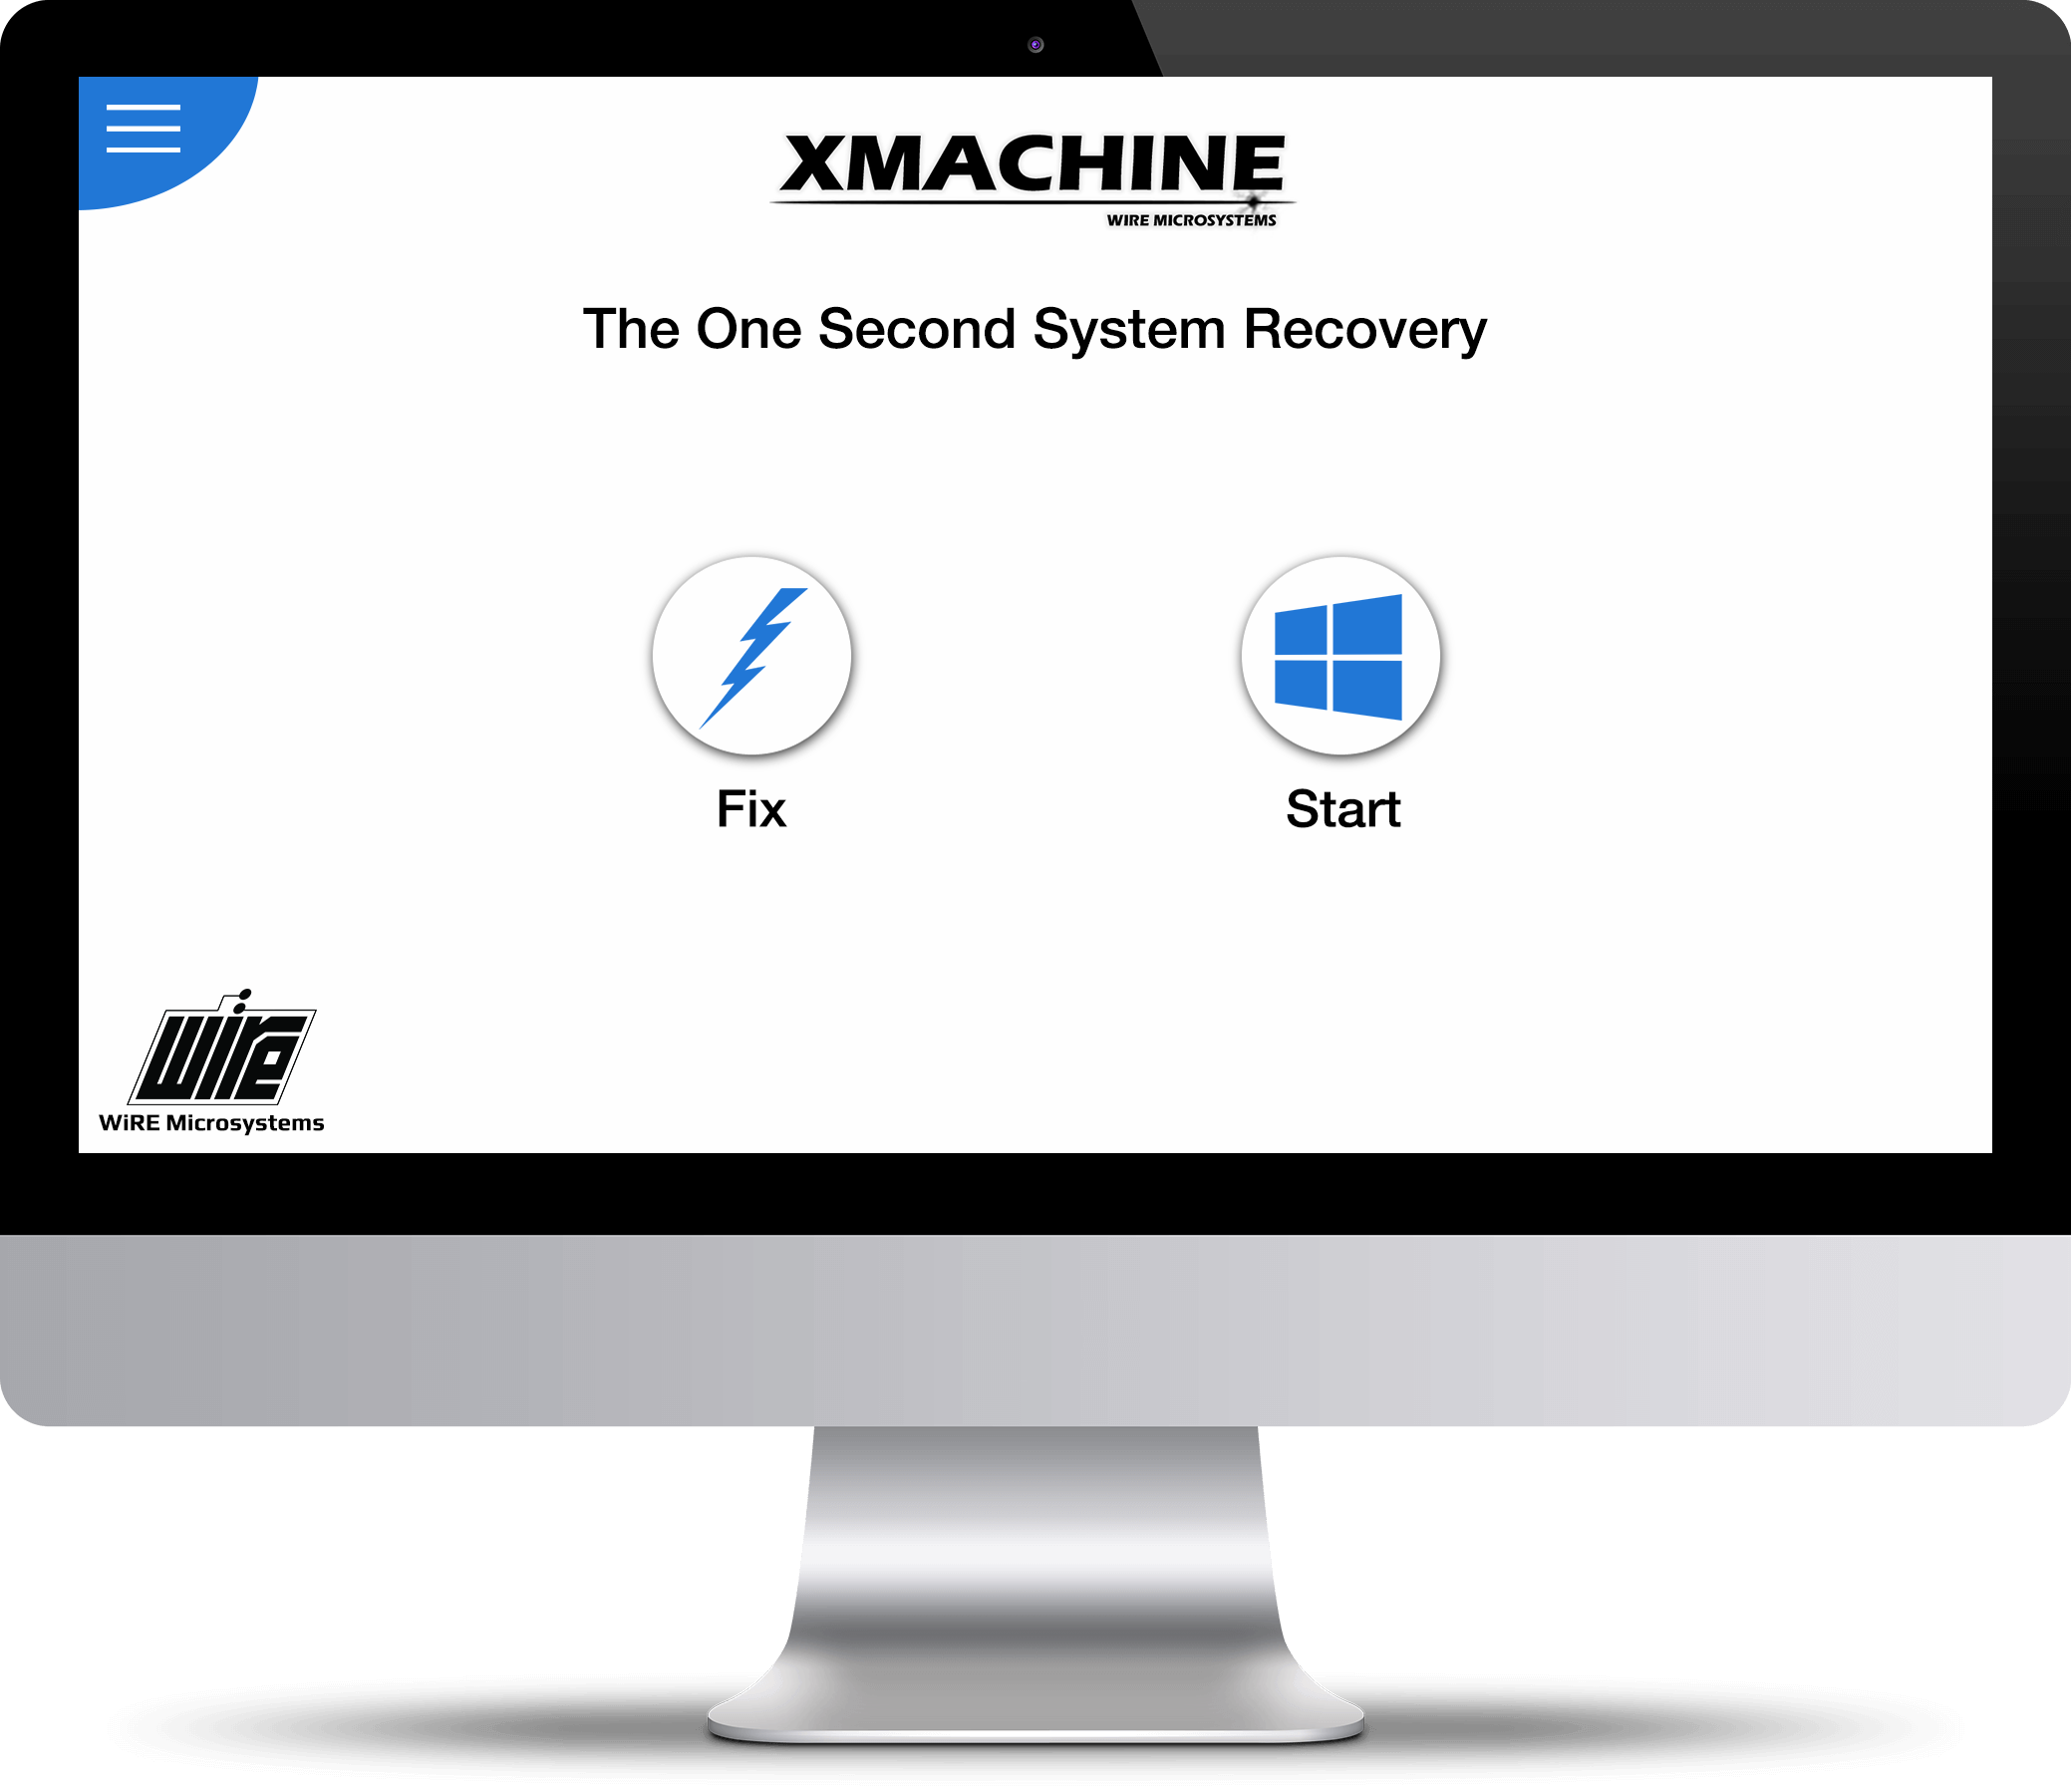 WiRE XMACHINE, The World's Fastest system recovery solution. The world's first single second disaster recovery